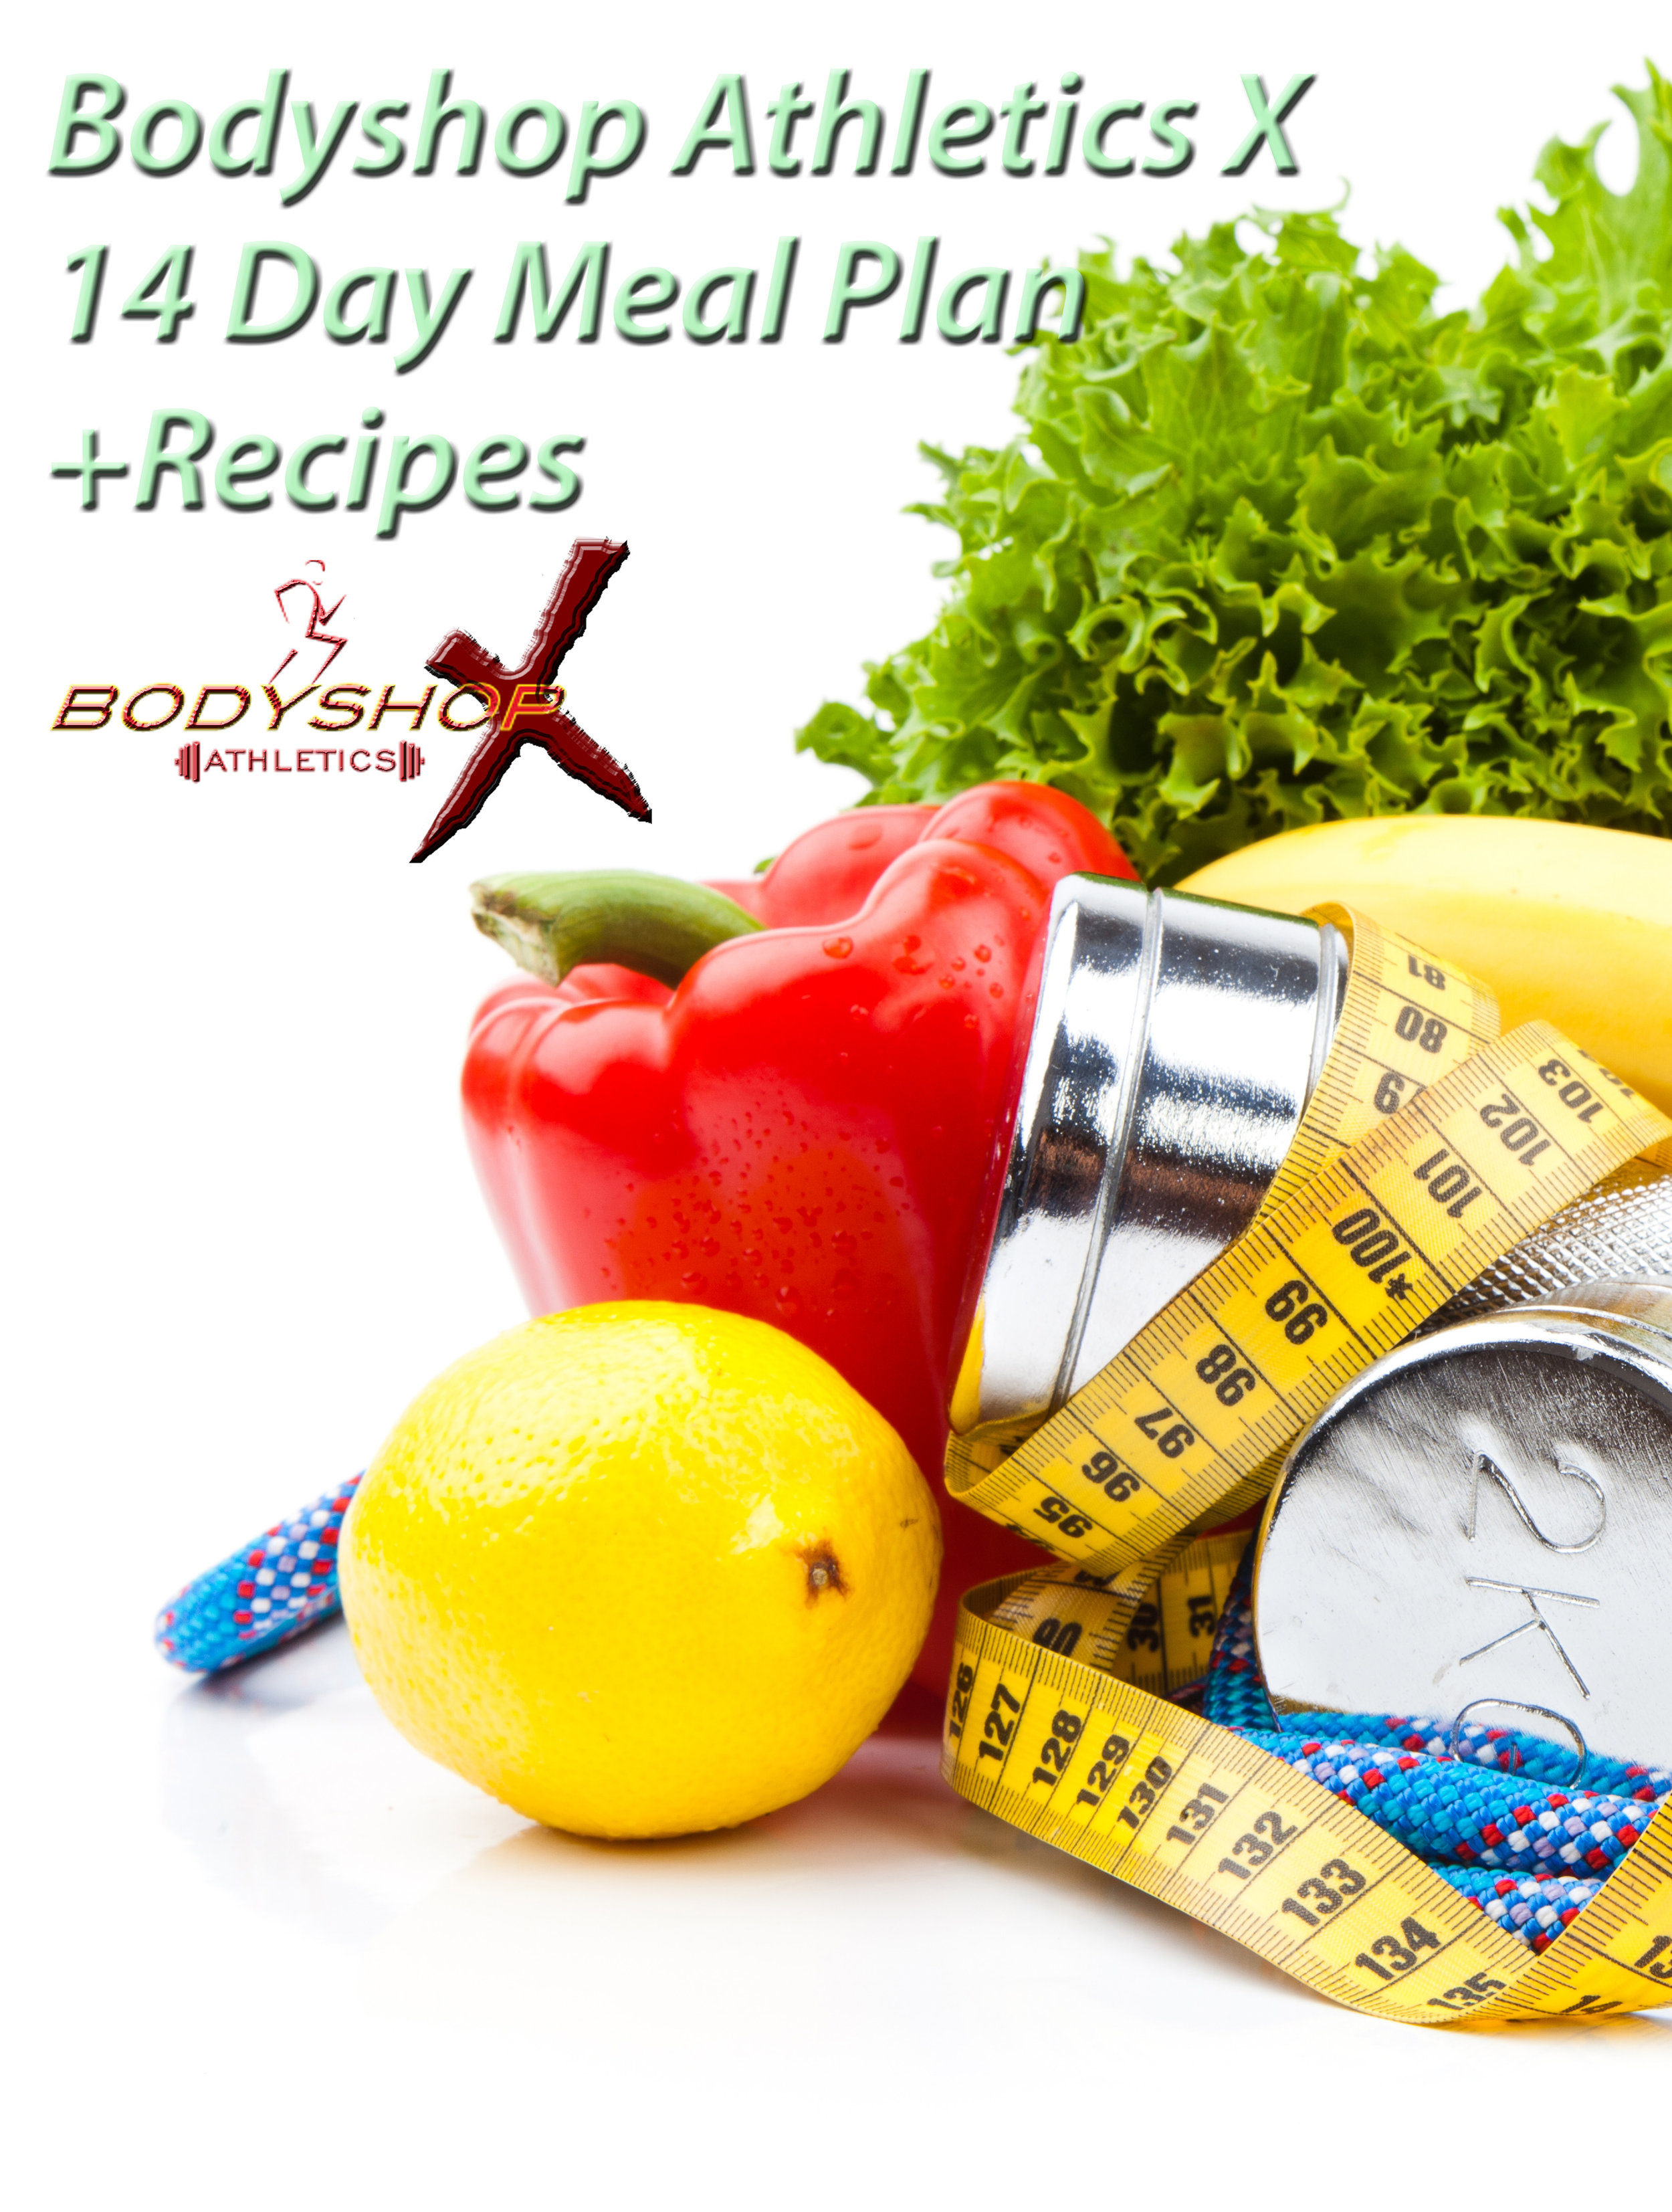 14 Day Meal Plan + Recipes.jpg